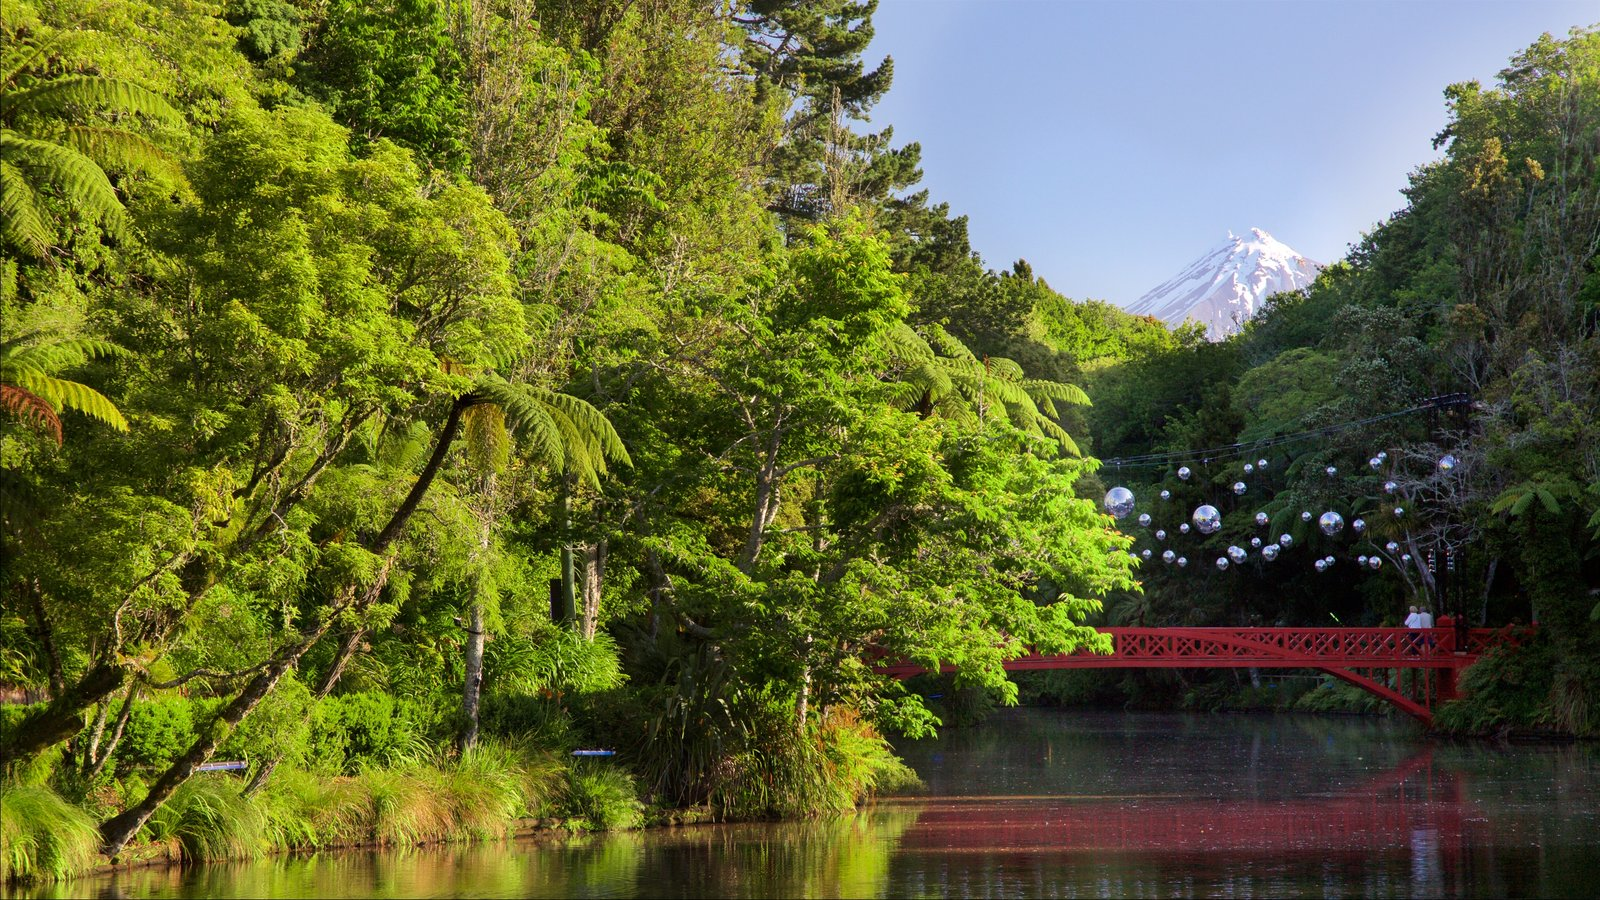 New Plymouth featuring a river or creek, forests and a bridge